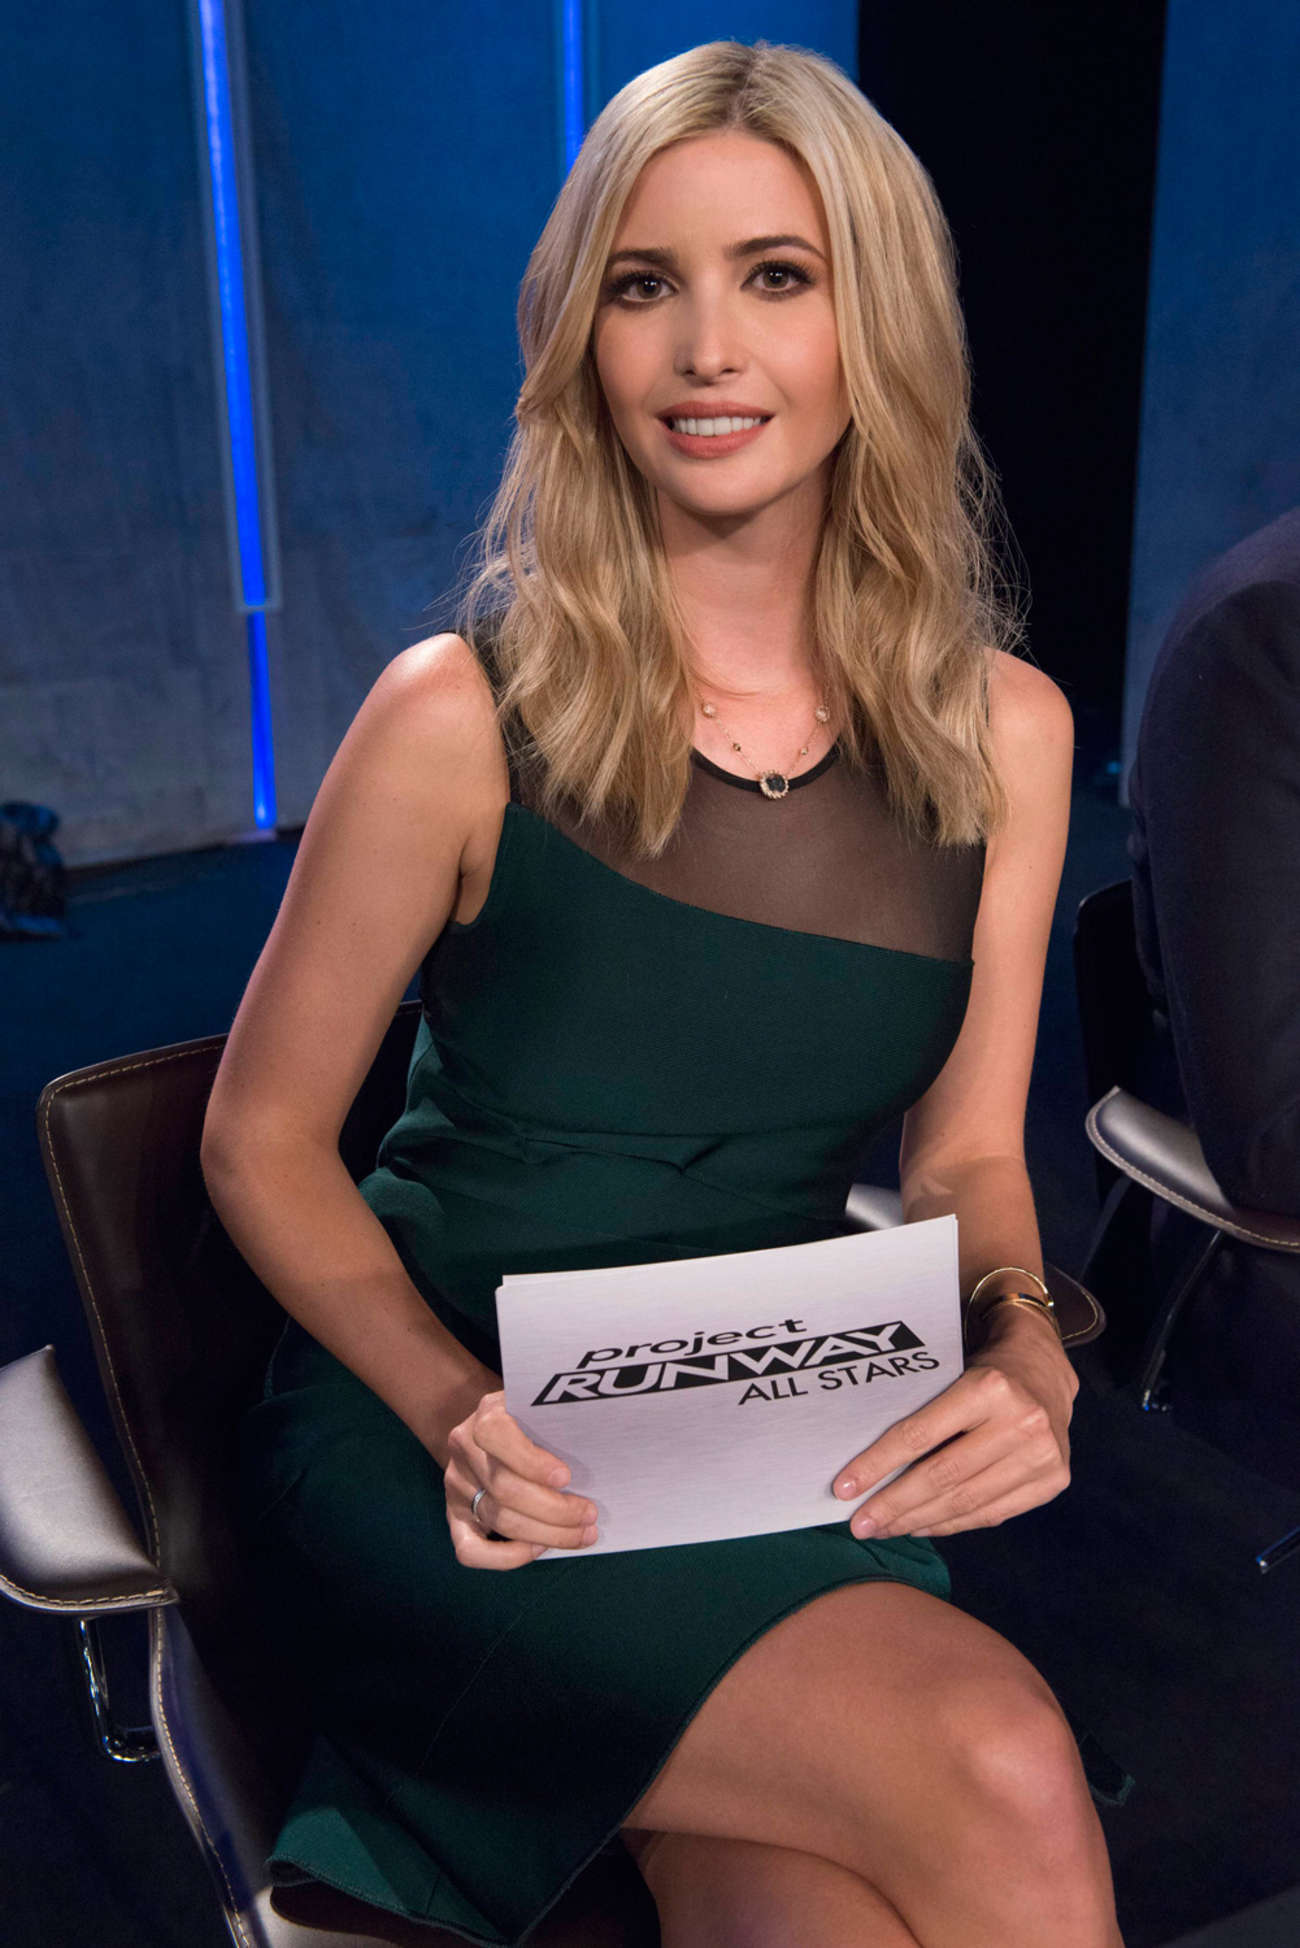 Ivanka Trump - Project Runway AllStars Season 4 Ep 3 Promos (2014)